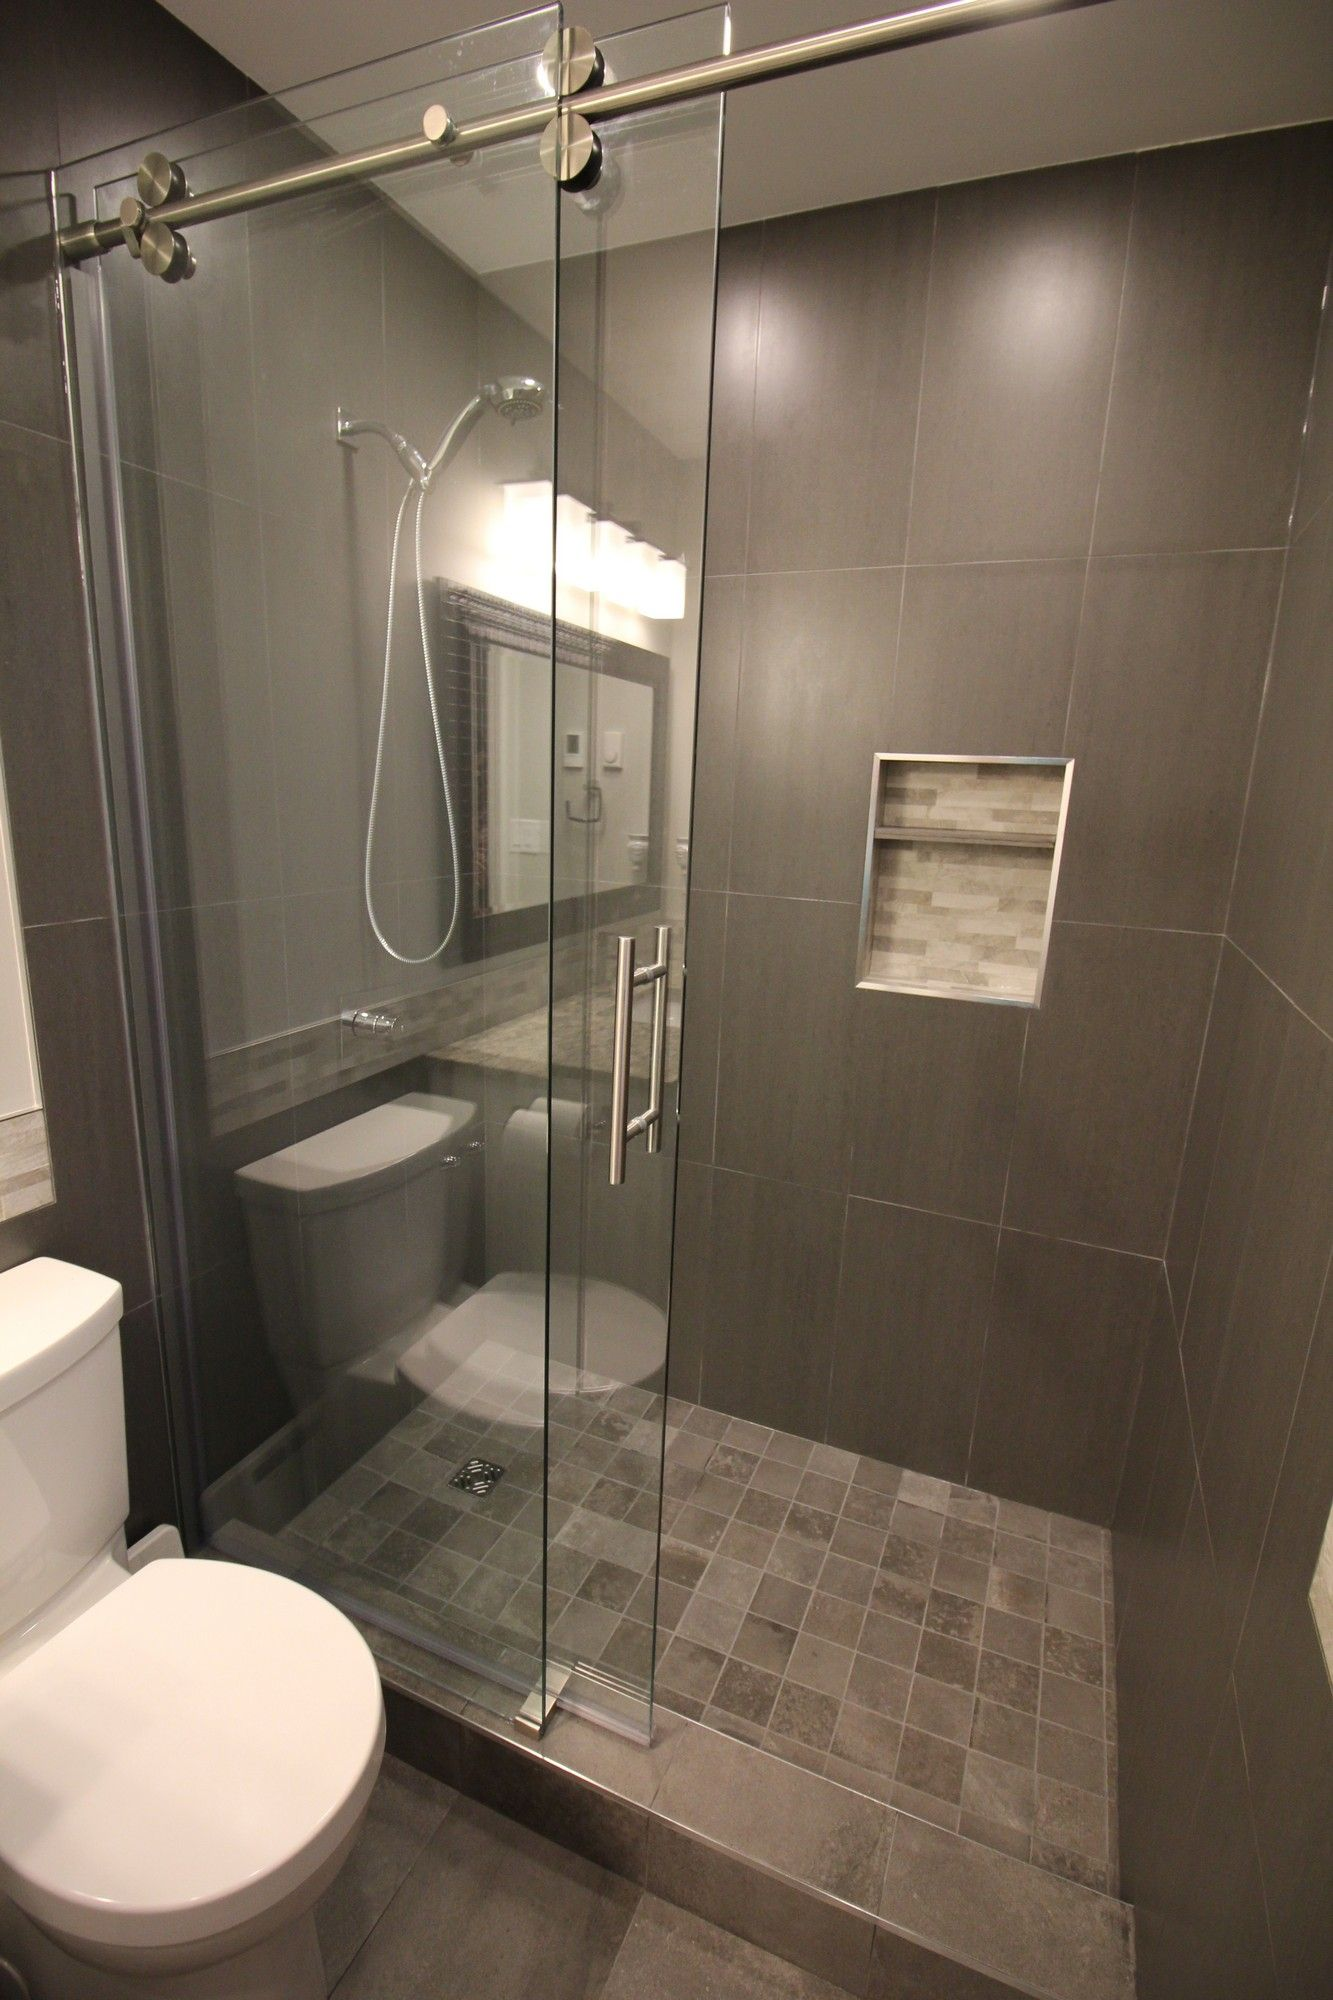 Best Photos Images And Pictures Gallery About Ensuite Bathroom Ideas Ensuitebathroom Ensui Small Dressing Rooms Small Bathroom Small Bathroom With Shower